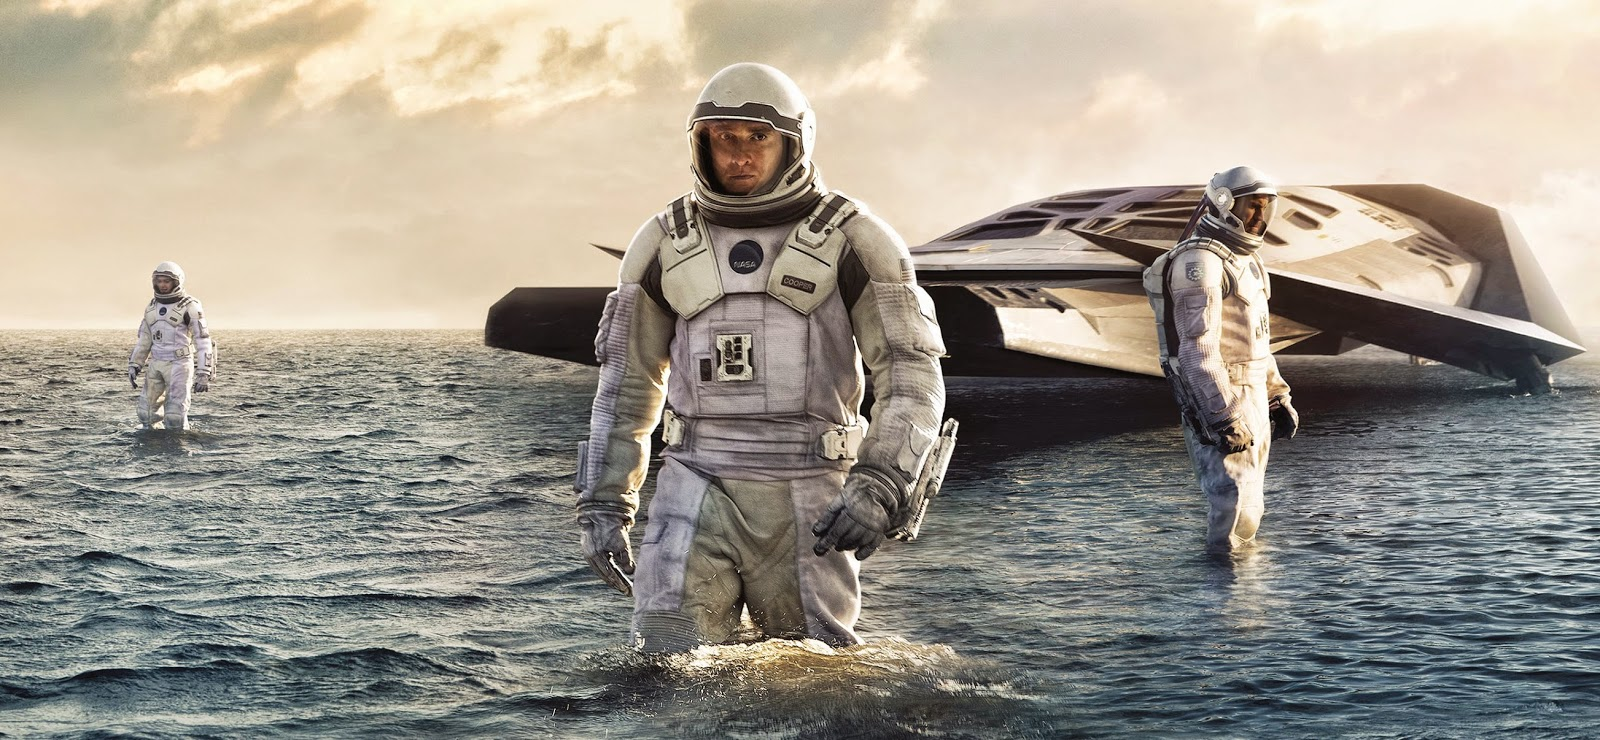 Interestelar | Veja o trailer final da ficção cientifica espacial de Christopher Nolan